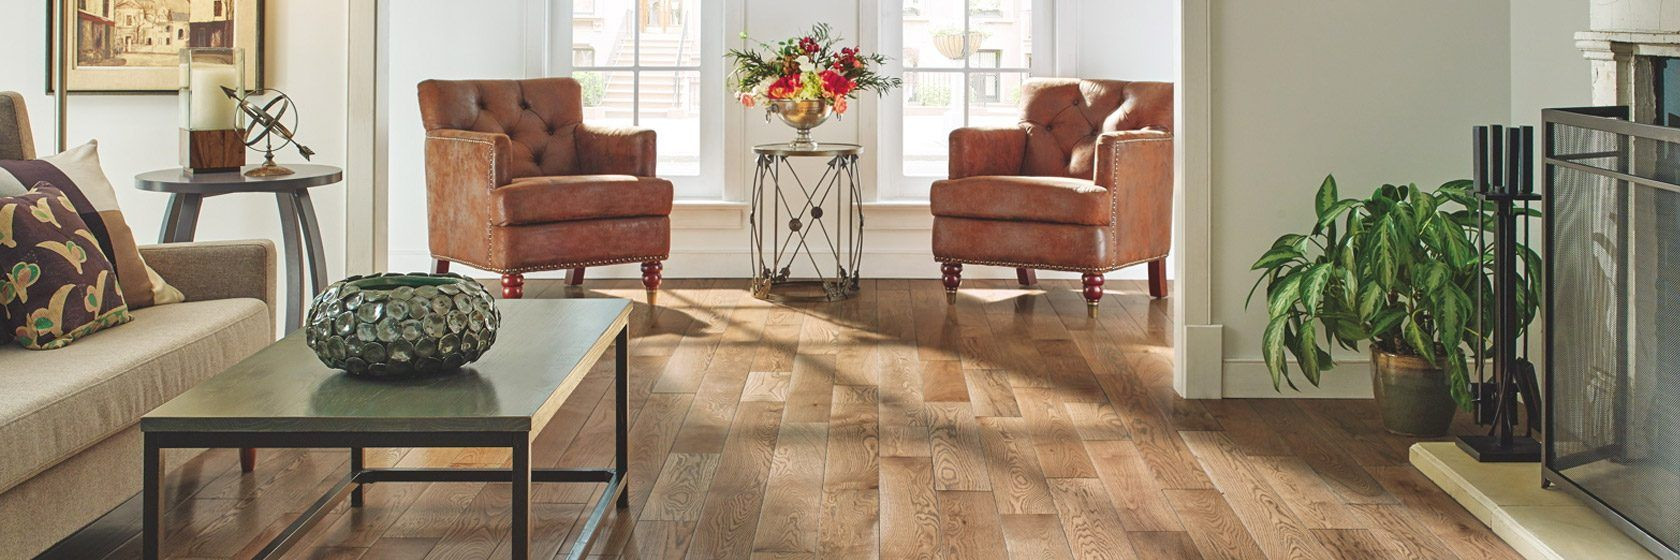 armstrong maple hardwood flooring of oak solid hardwood hay ground saktb39l4hgw is part of the with oak solid hardwood hay ground saktb39l4hgw is part of the timberbrushed collection from hardwood view specs order a sample